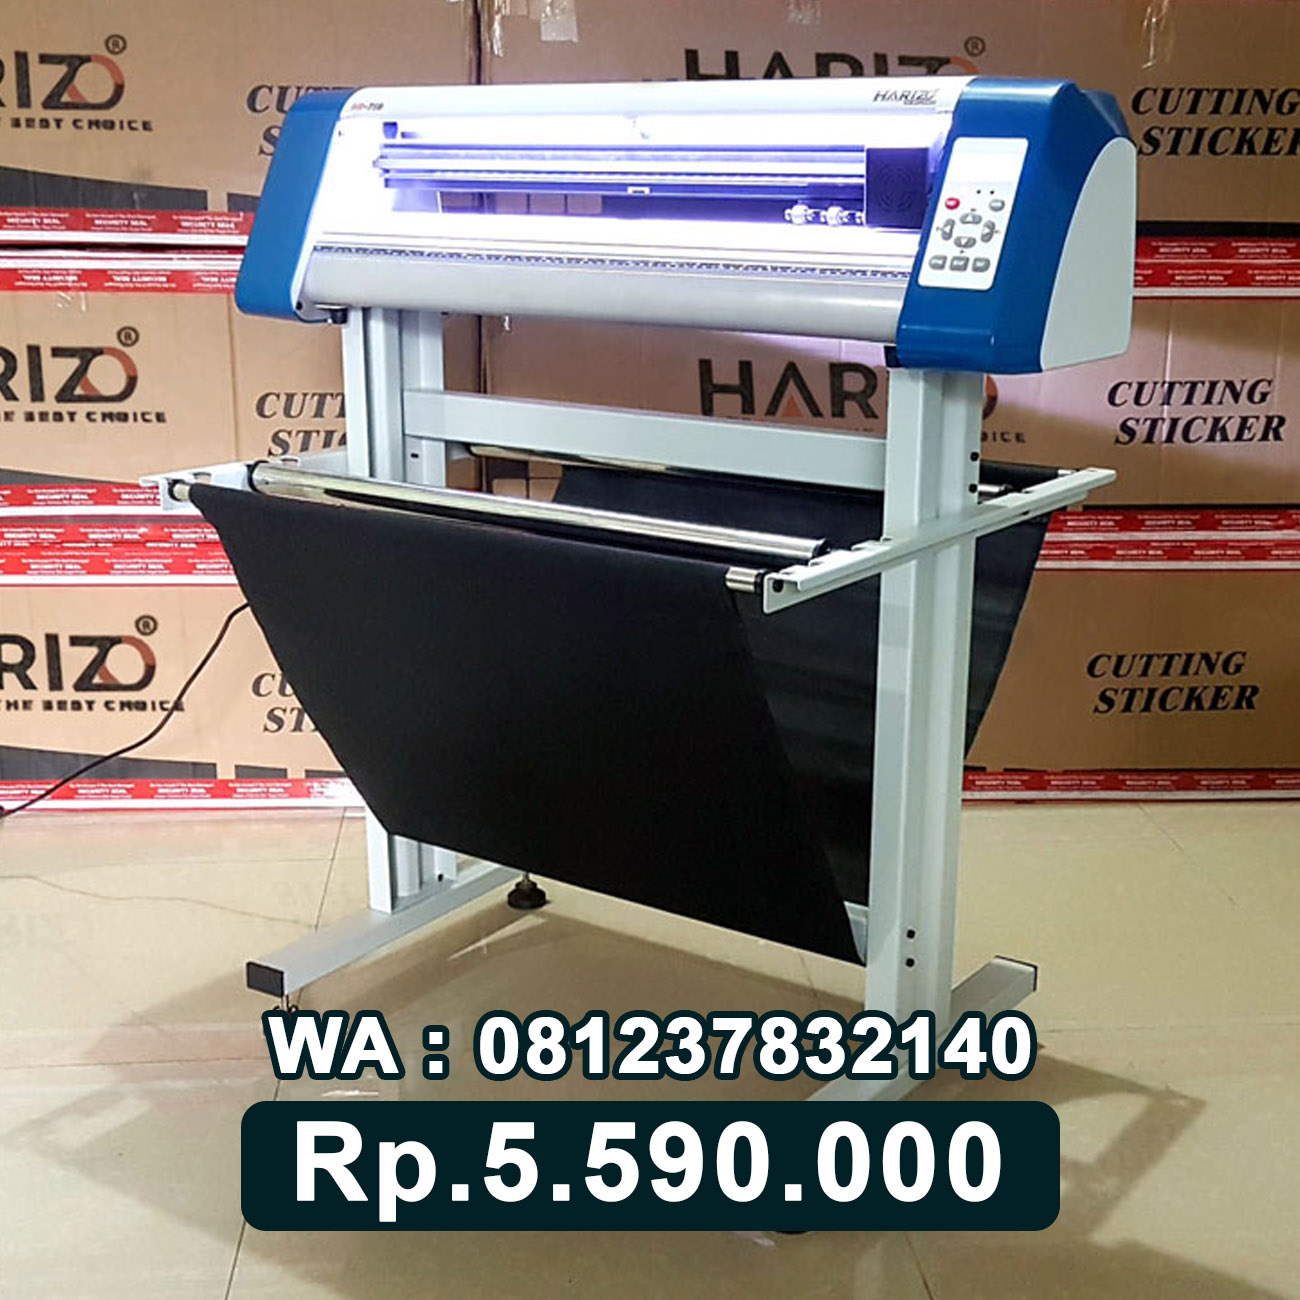 JUAL MESIN CUTTING STICKER HARIZO 720 Tanjung Selor